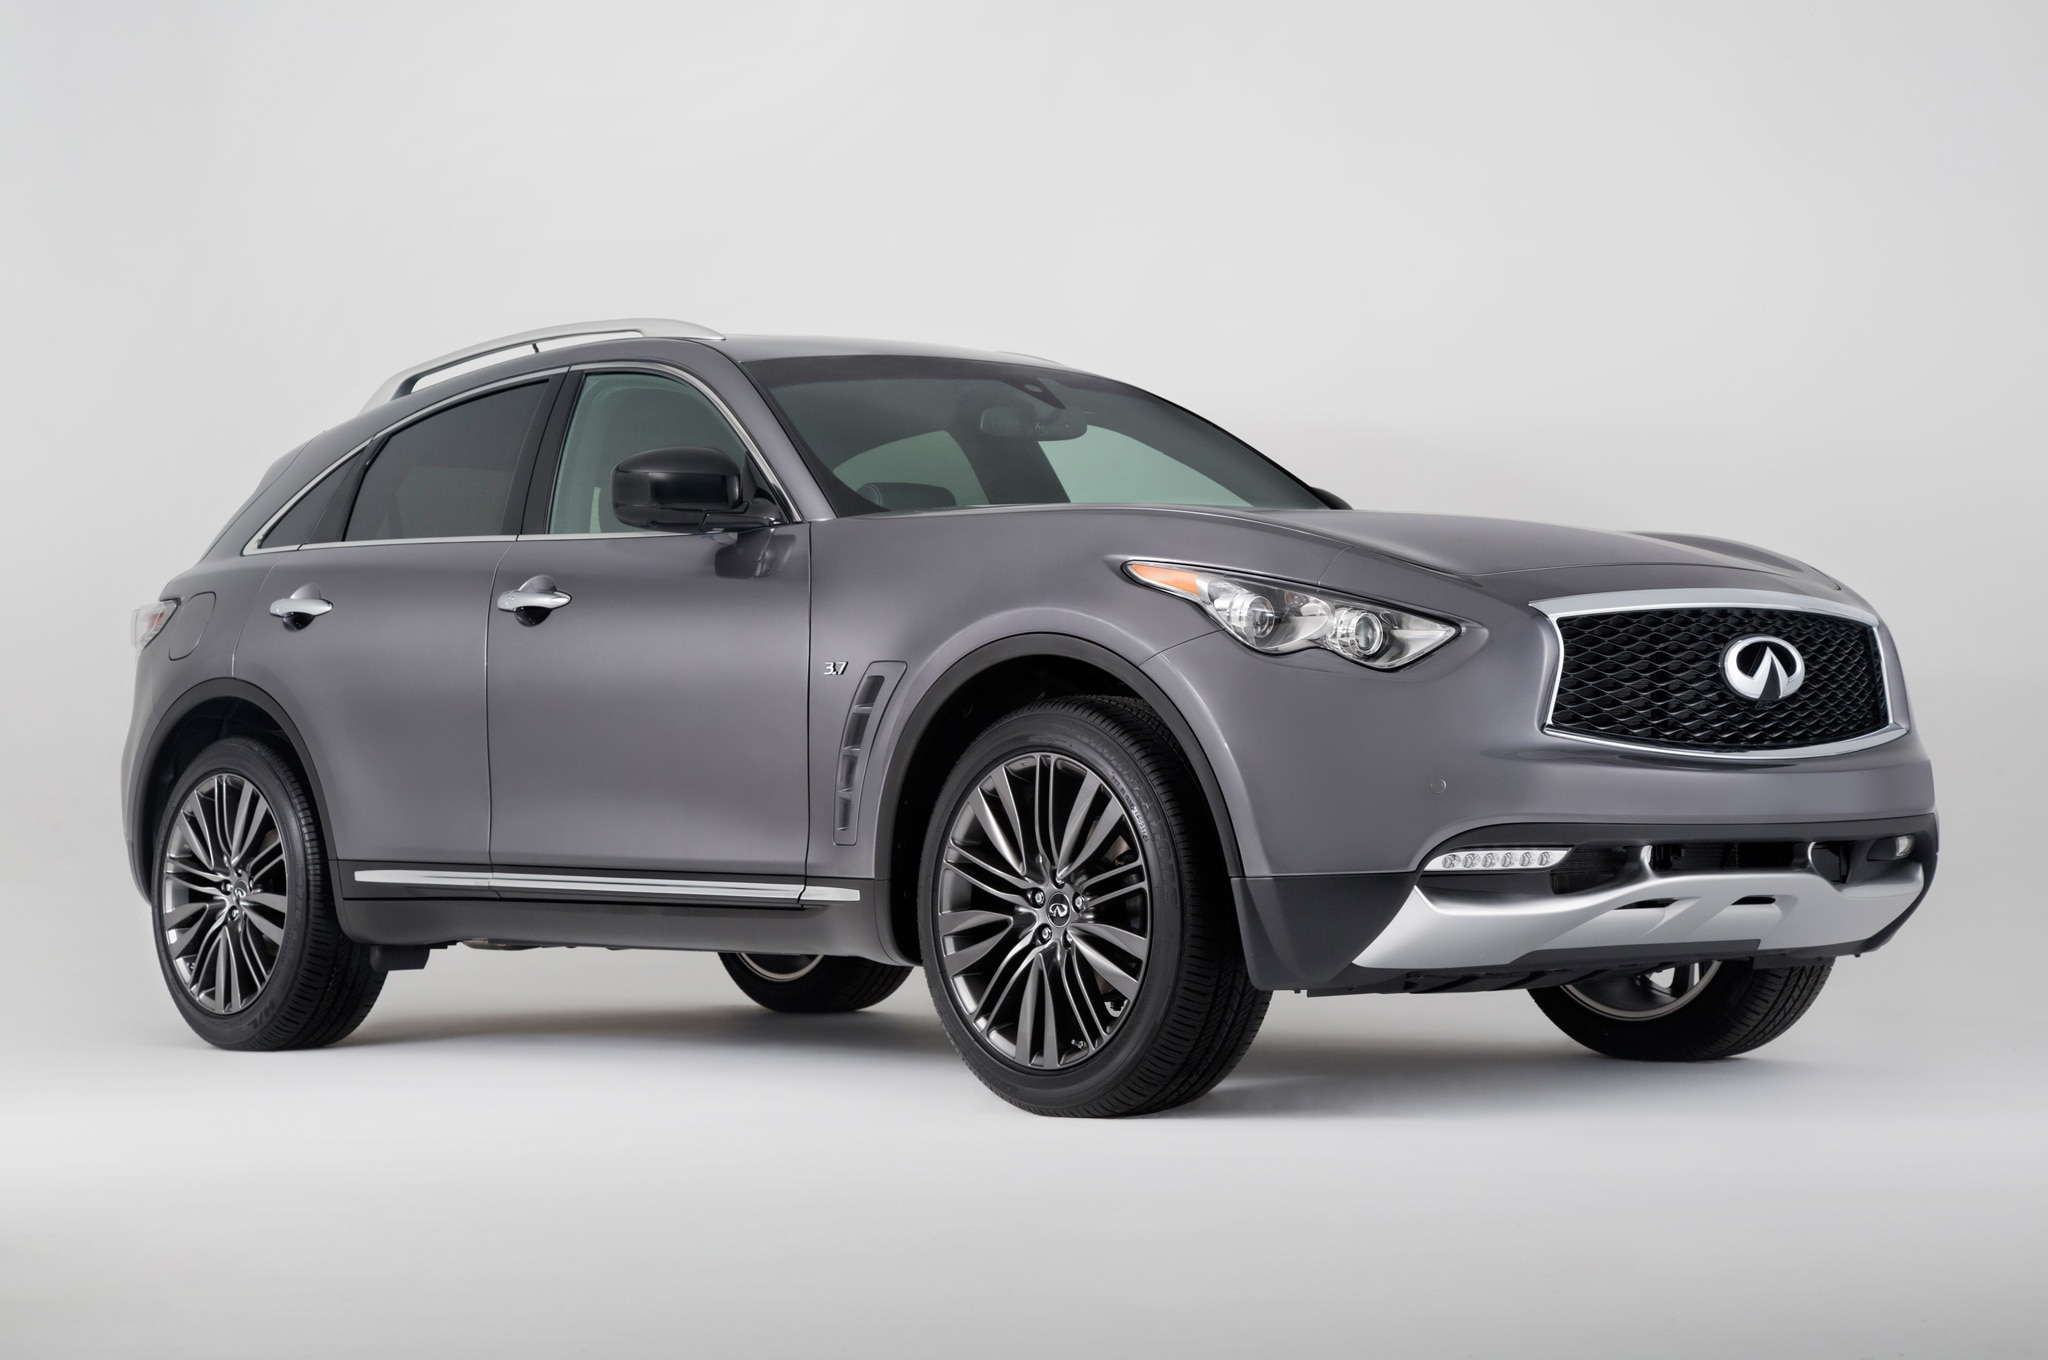 2017 Infiniti QX70 Limited Front Three Quarter